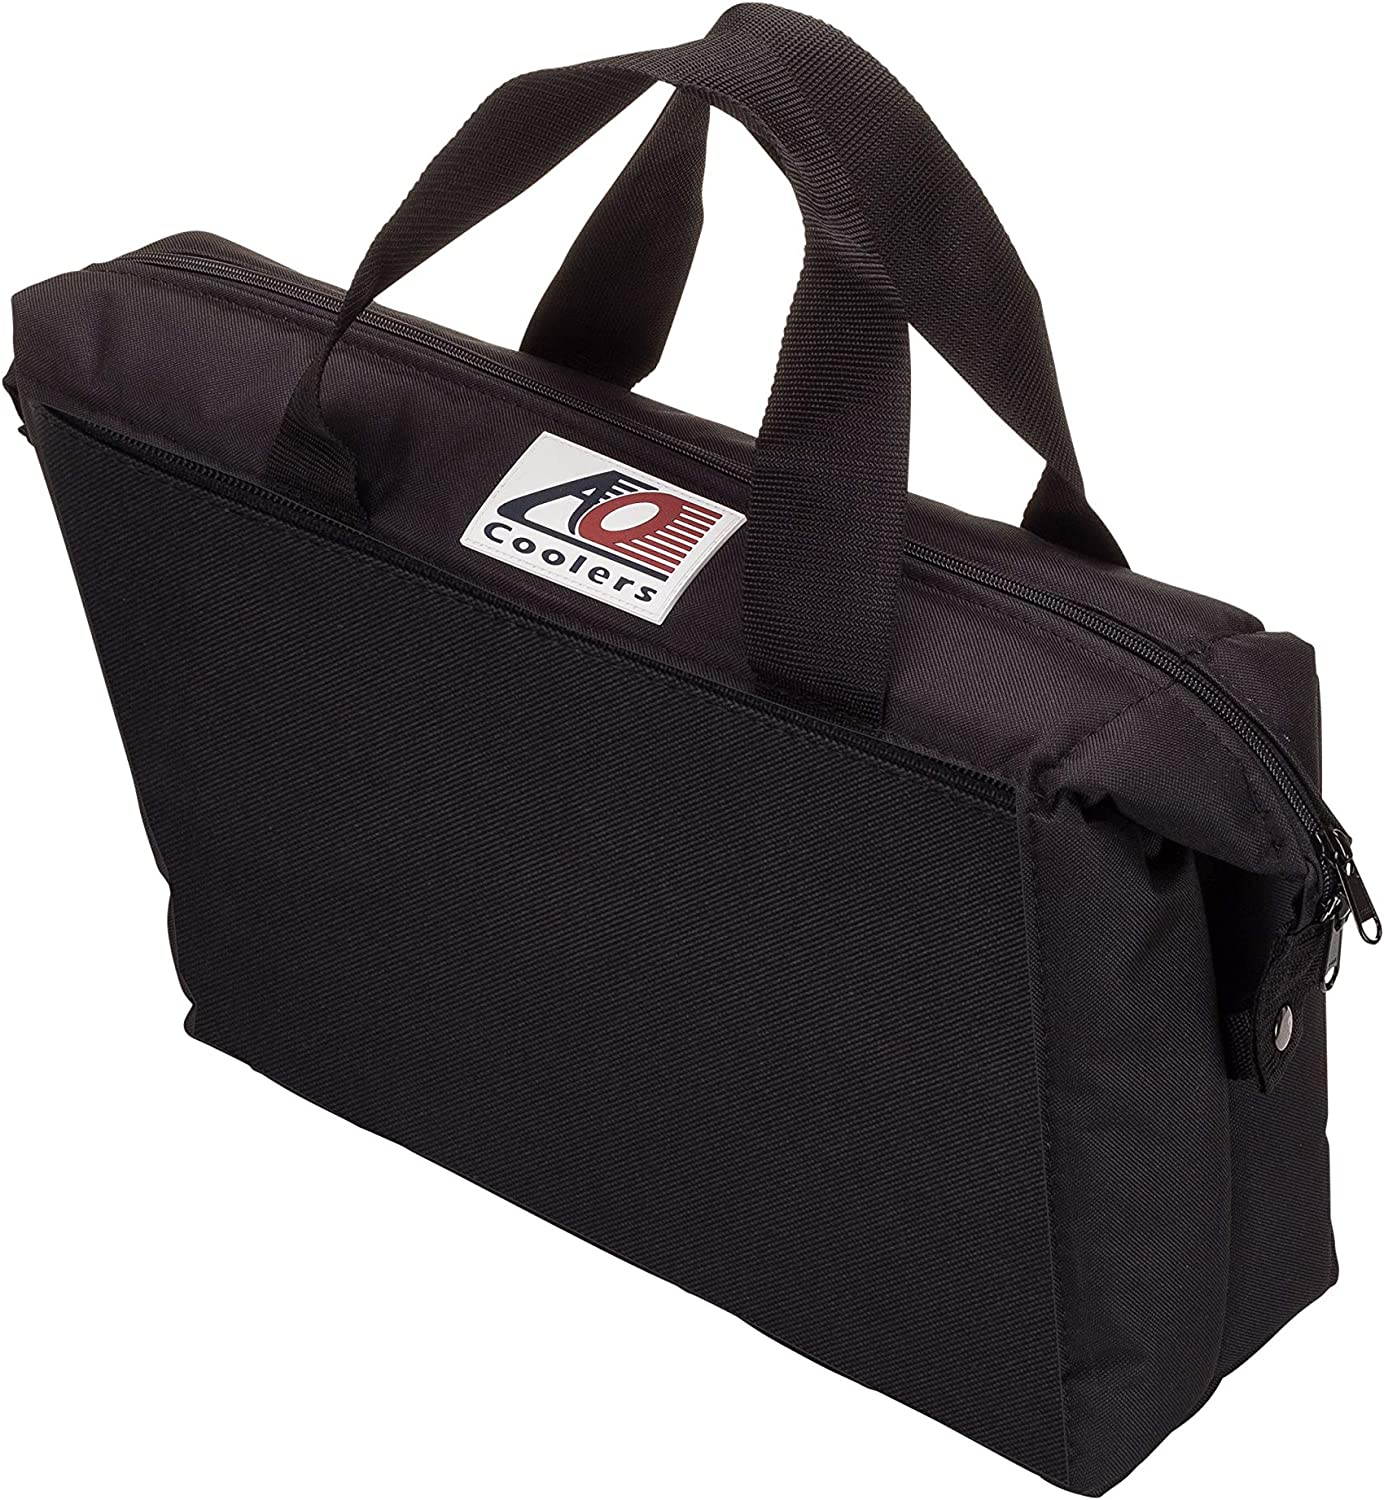 AO Coolers - AO18MOTO Motorcycle Saddle Bags Soft Cooler (15-Can Capacity), Black